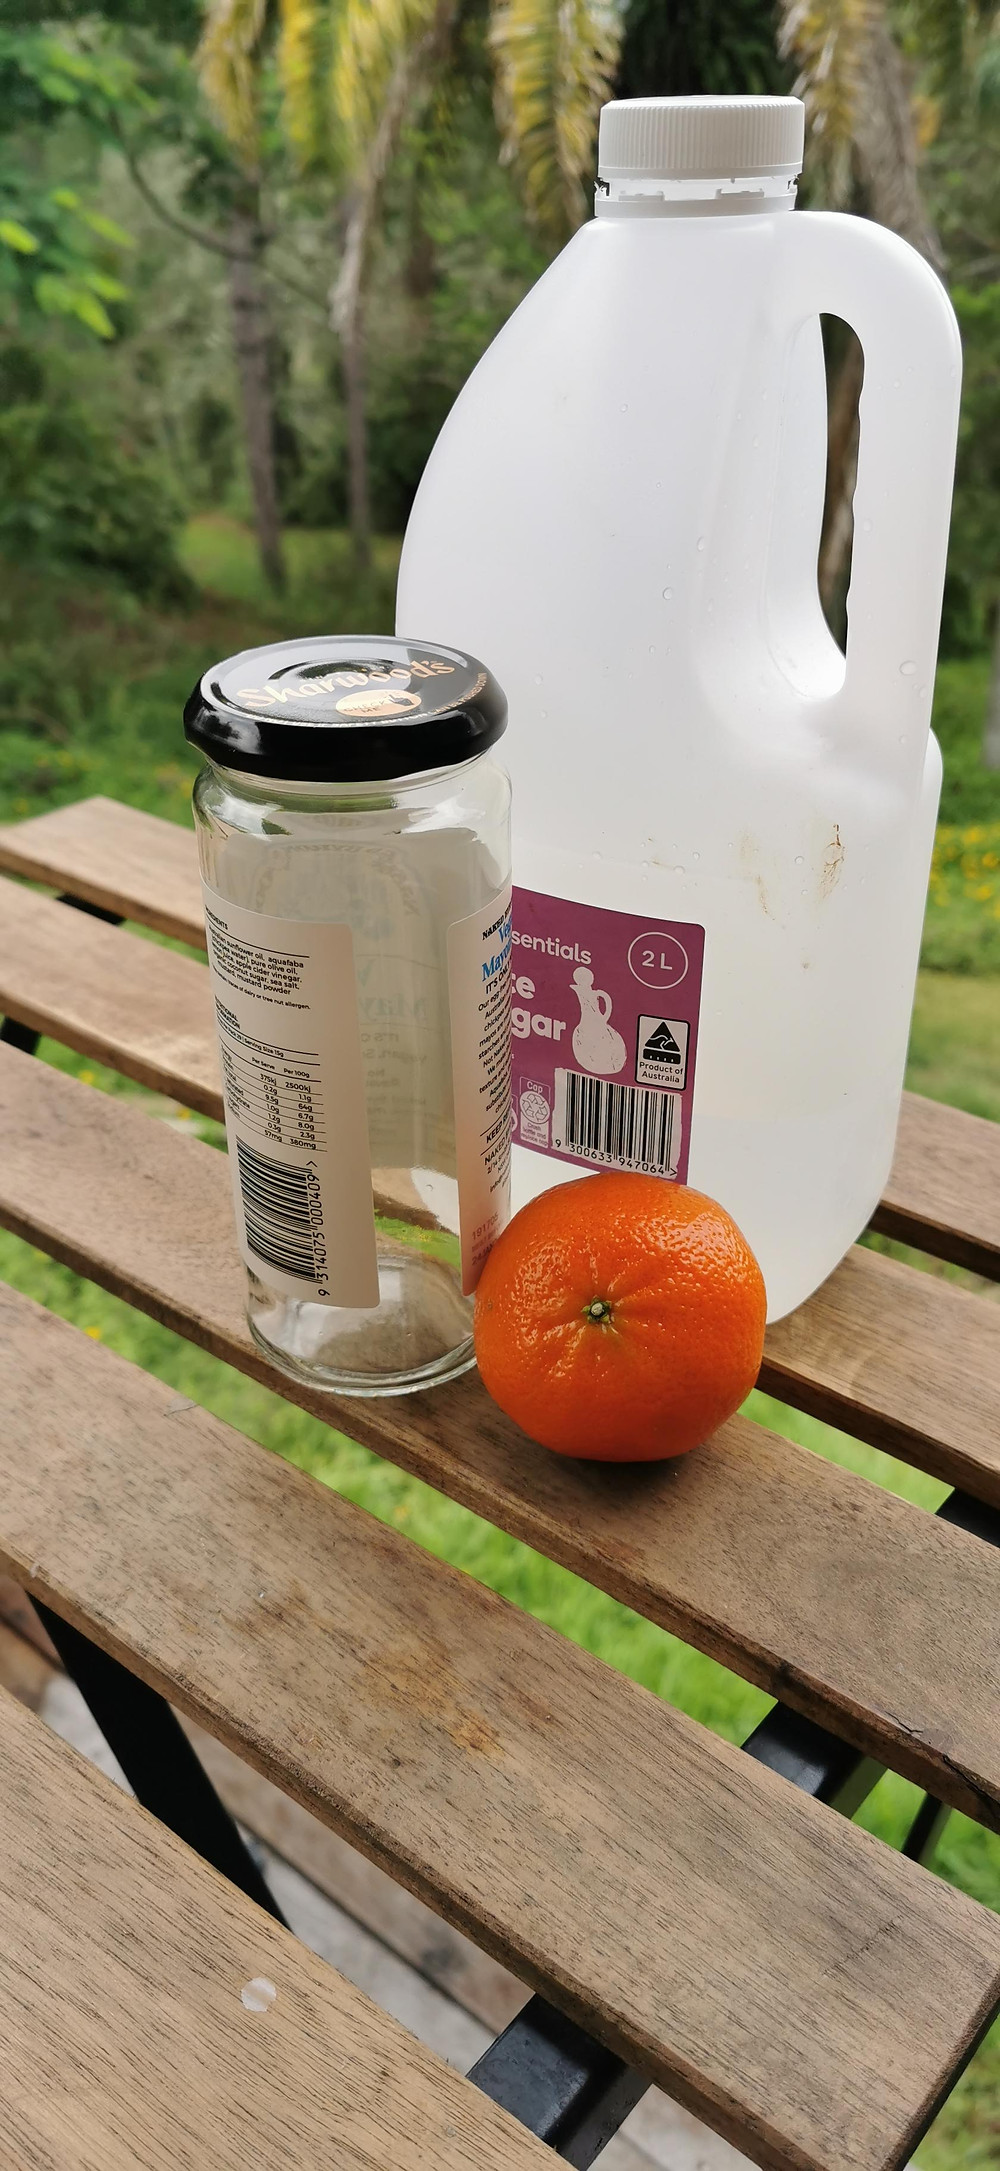 three ingredient all purpose spray. Natural ingredients preset are white vinegar, a mandarin and an old repurposed glass jar